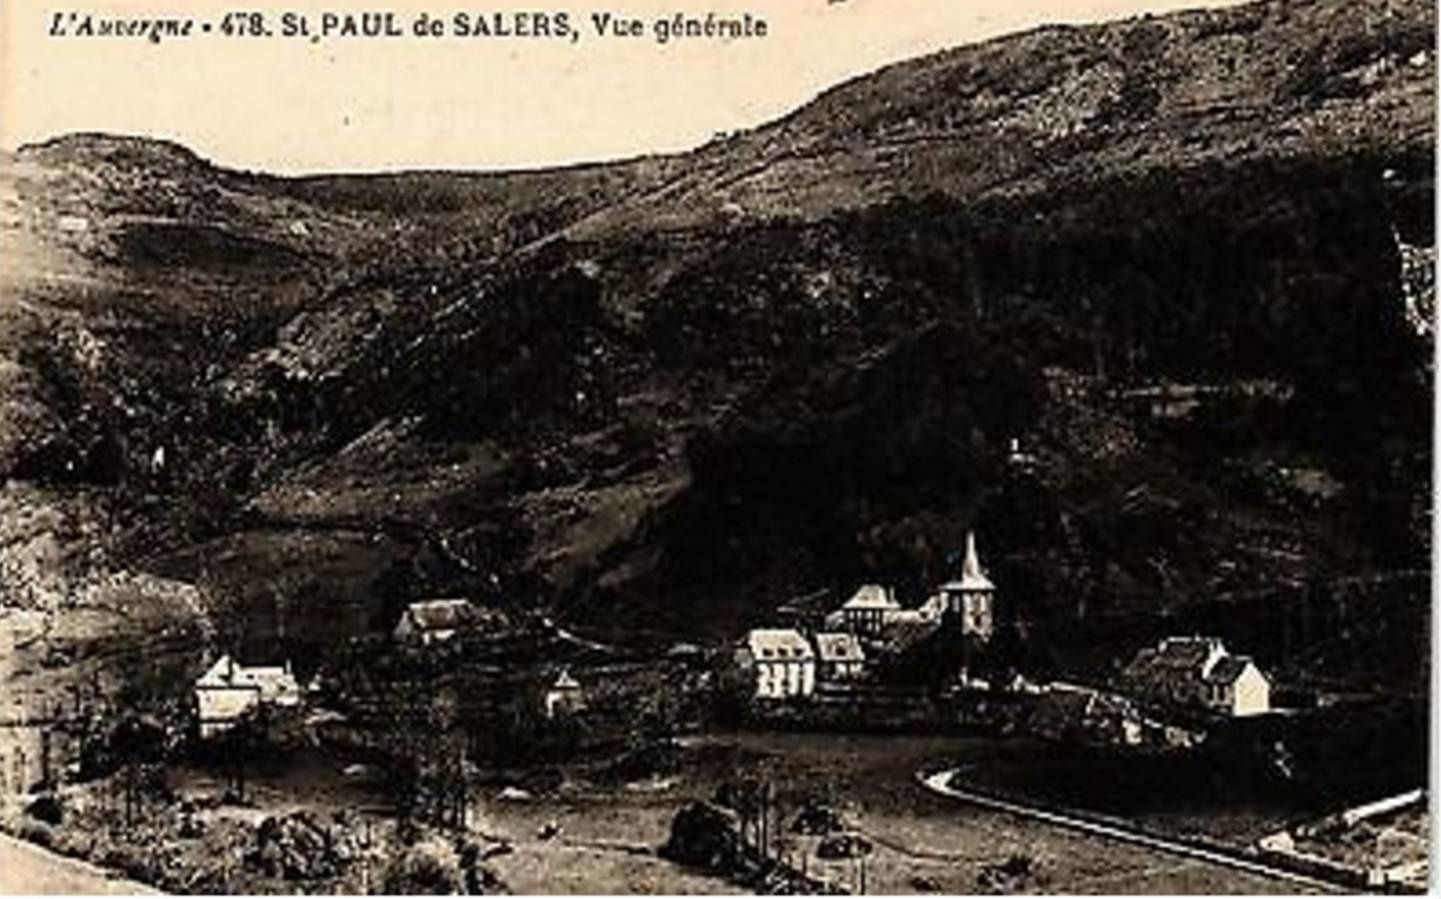 Saint Paul de Salers